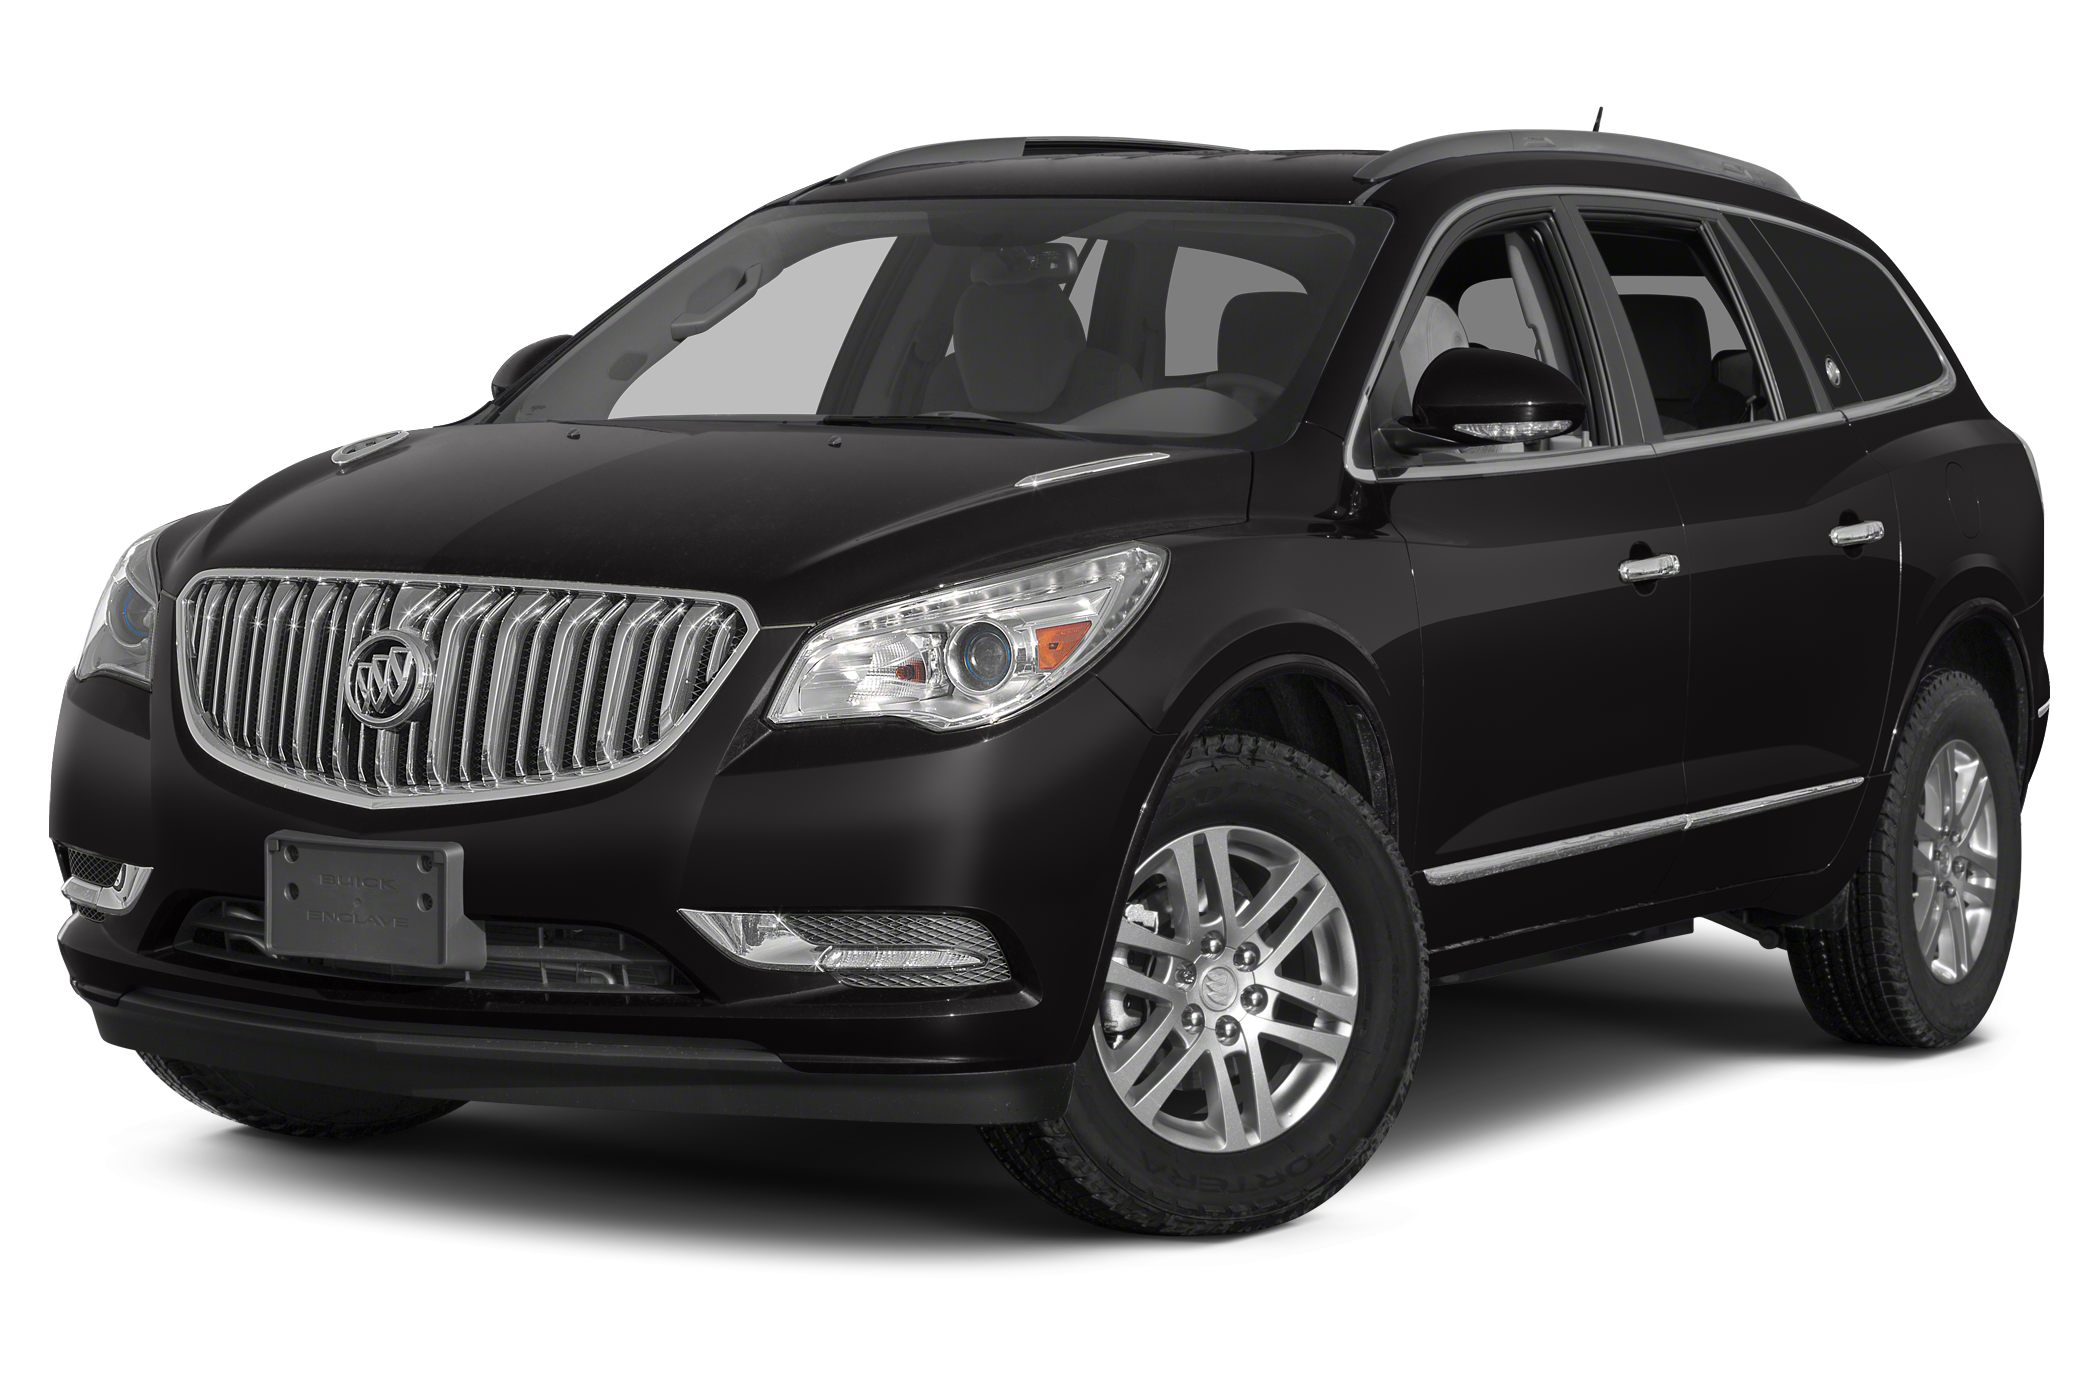 2014 Buick Enclave Leather SUV for sale in Midland for $35,420 with 36,110 miles.